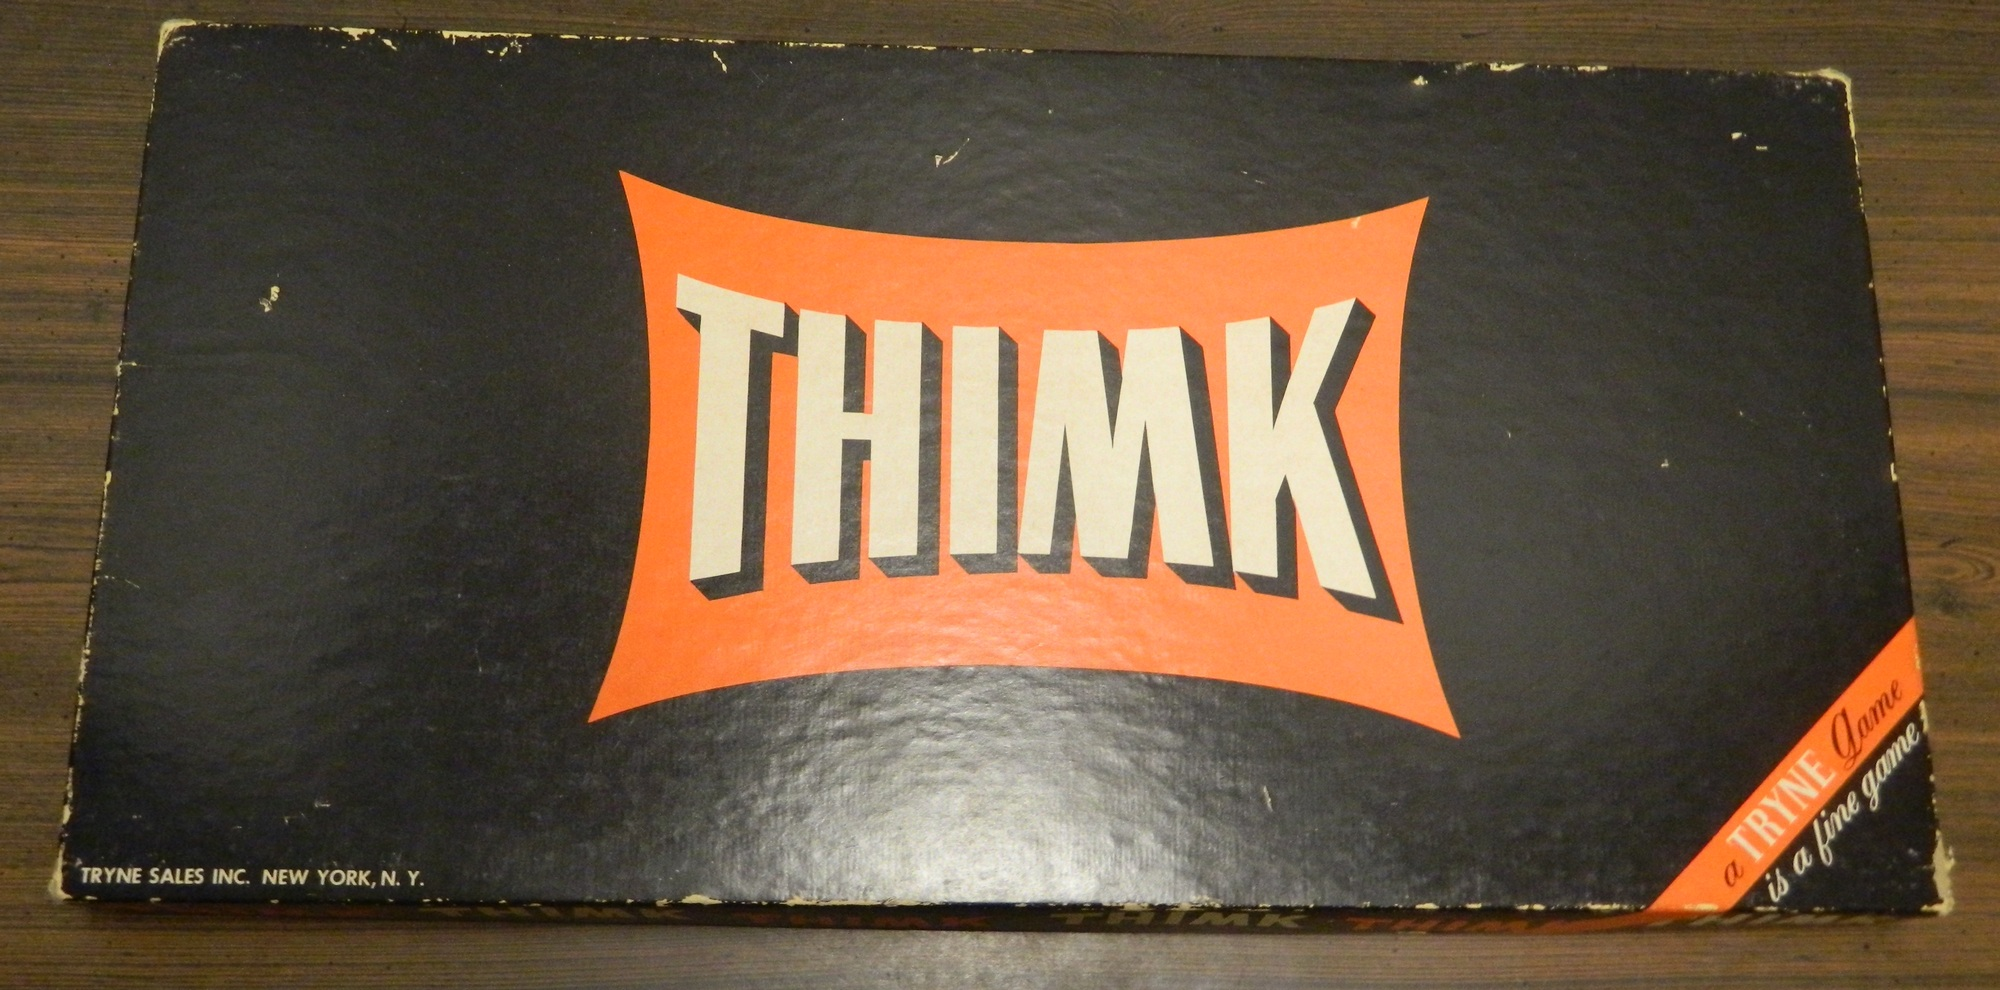 Box for Thimk